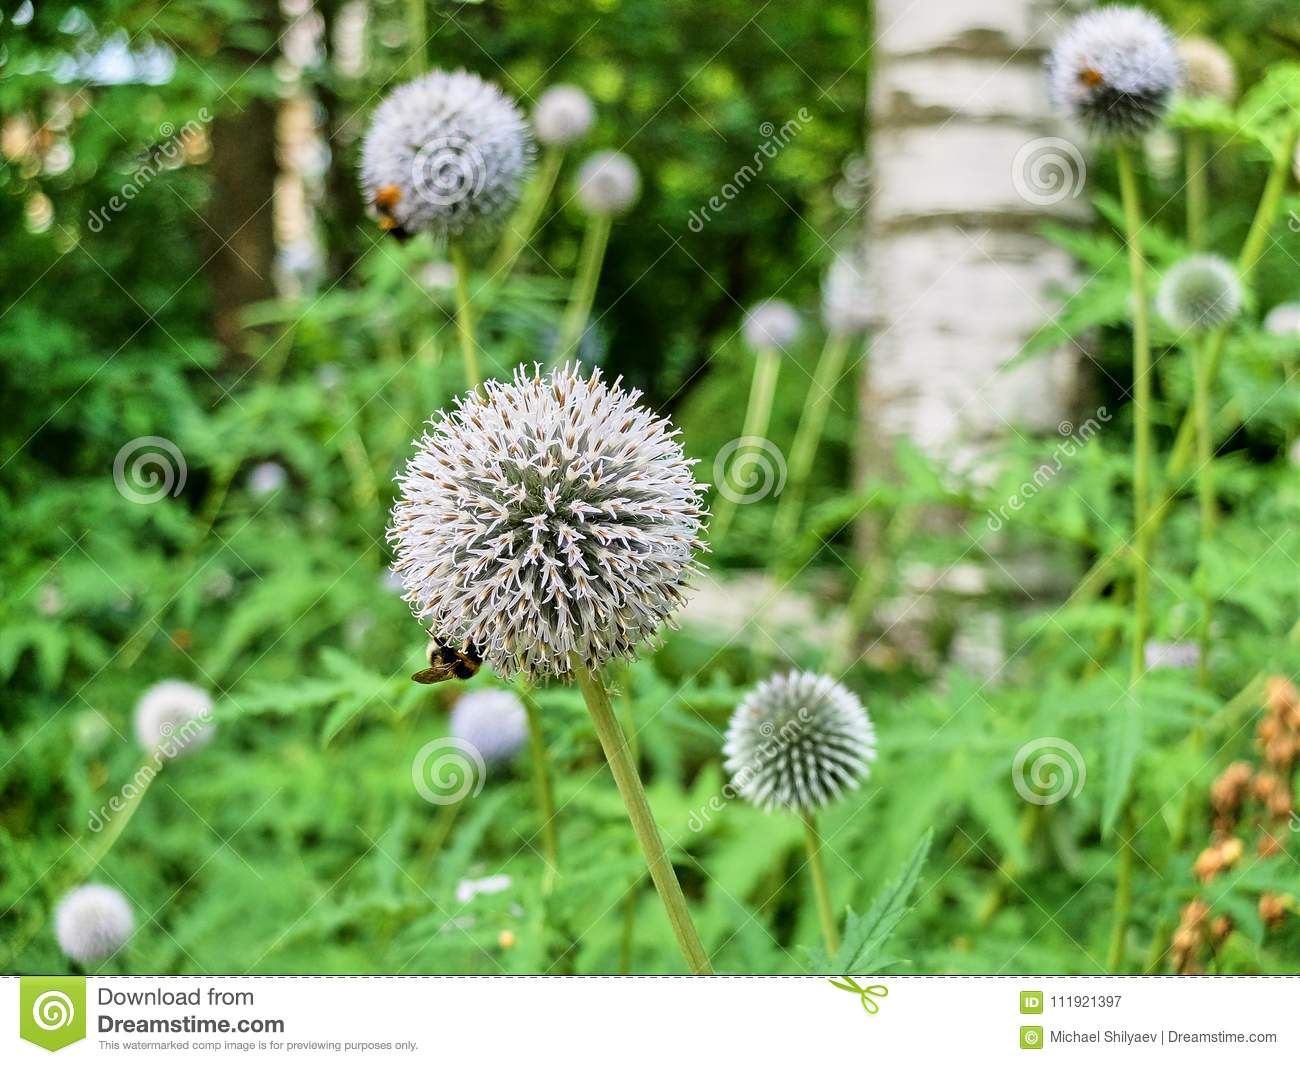 Multiple White Allium Flowers Pollinated By Bees On The Meadow Stock